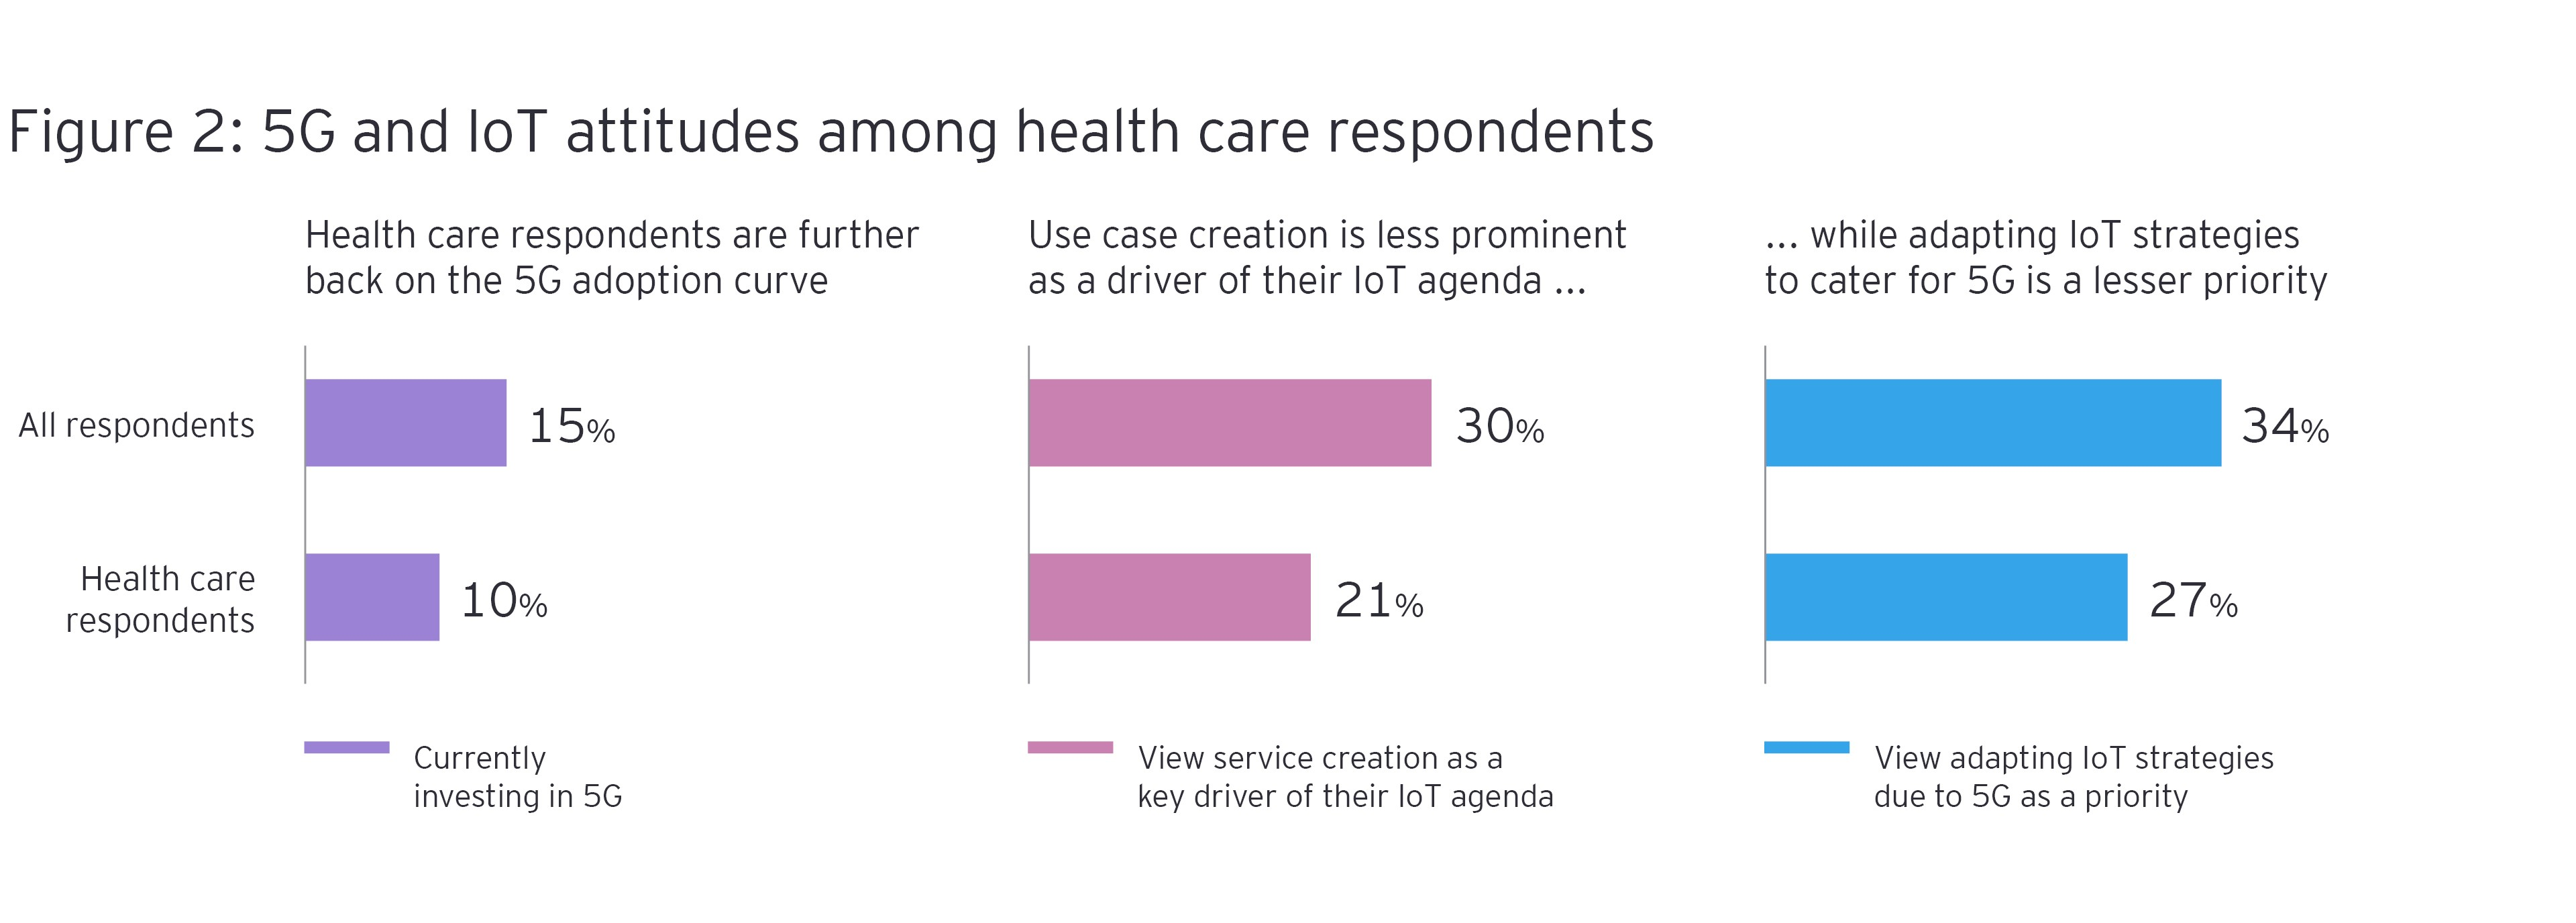 5G and IoT attitudes among health care respondents